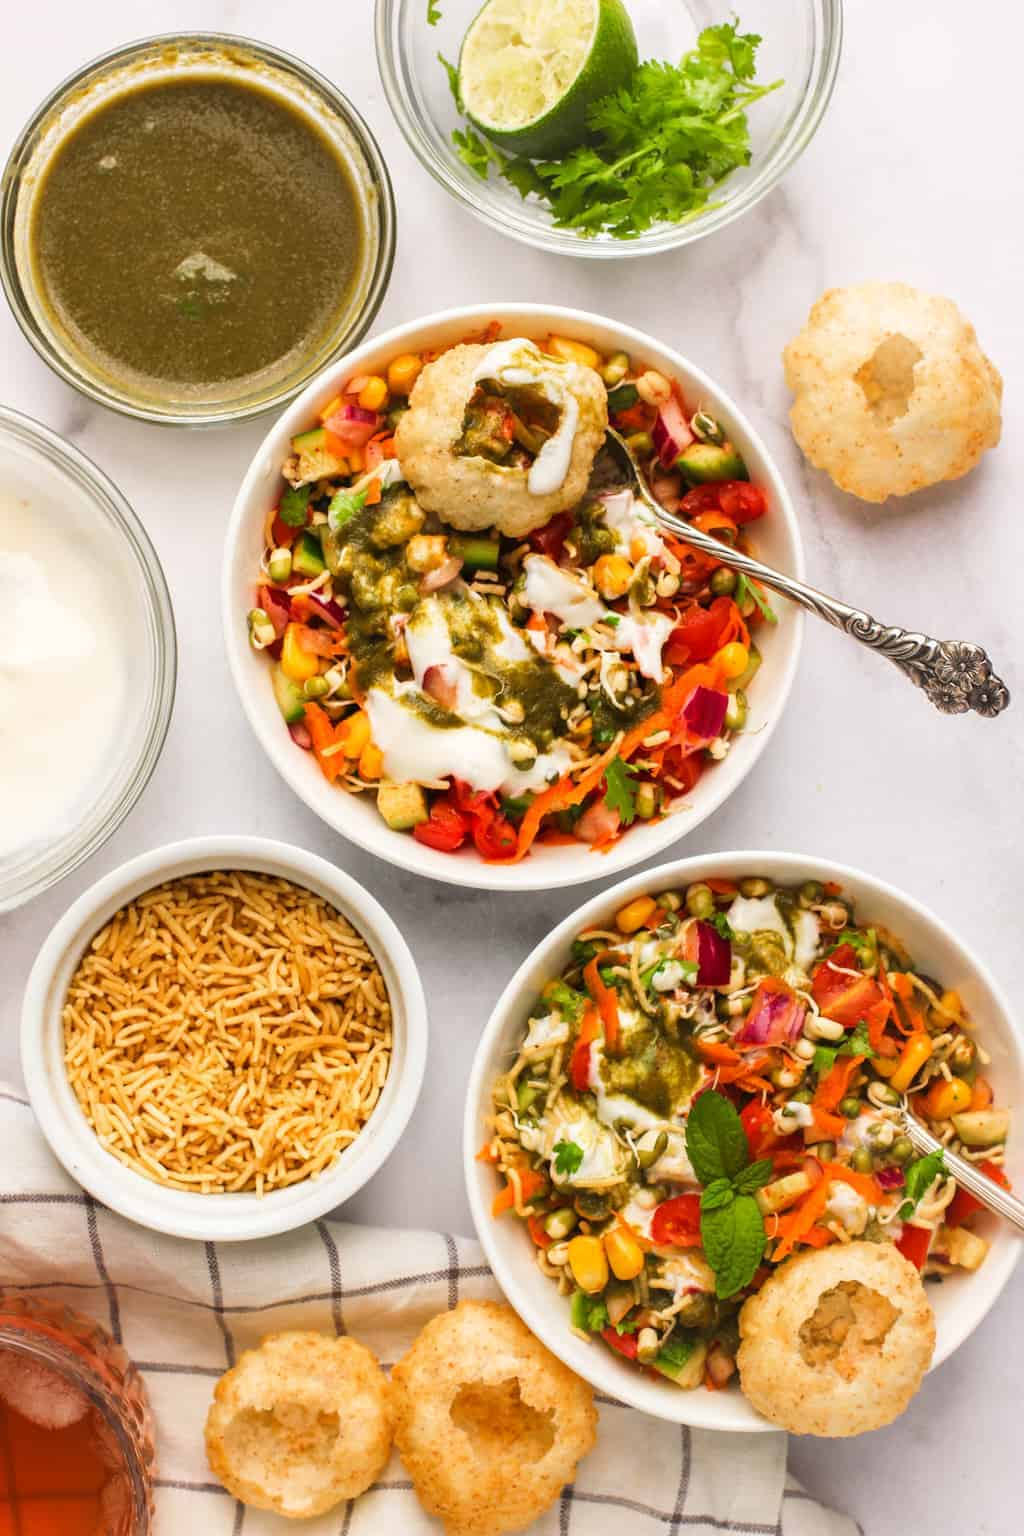 Mung Bean Salad in bowls with toppings